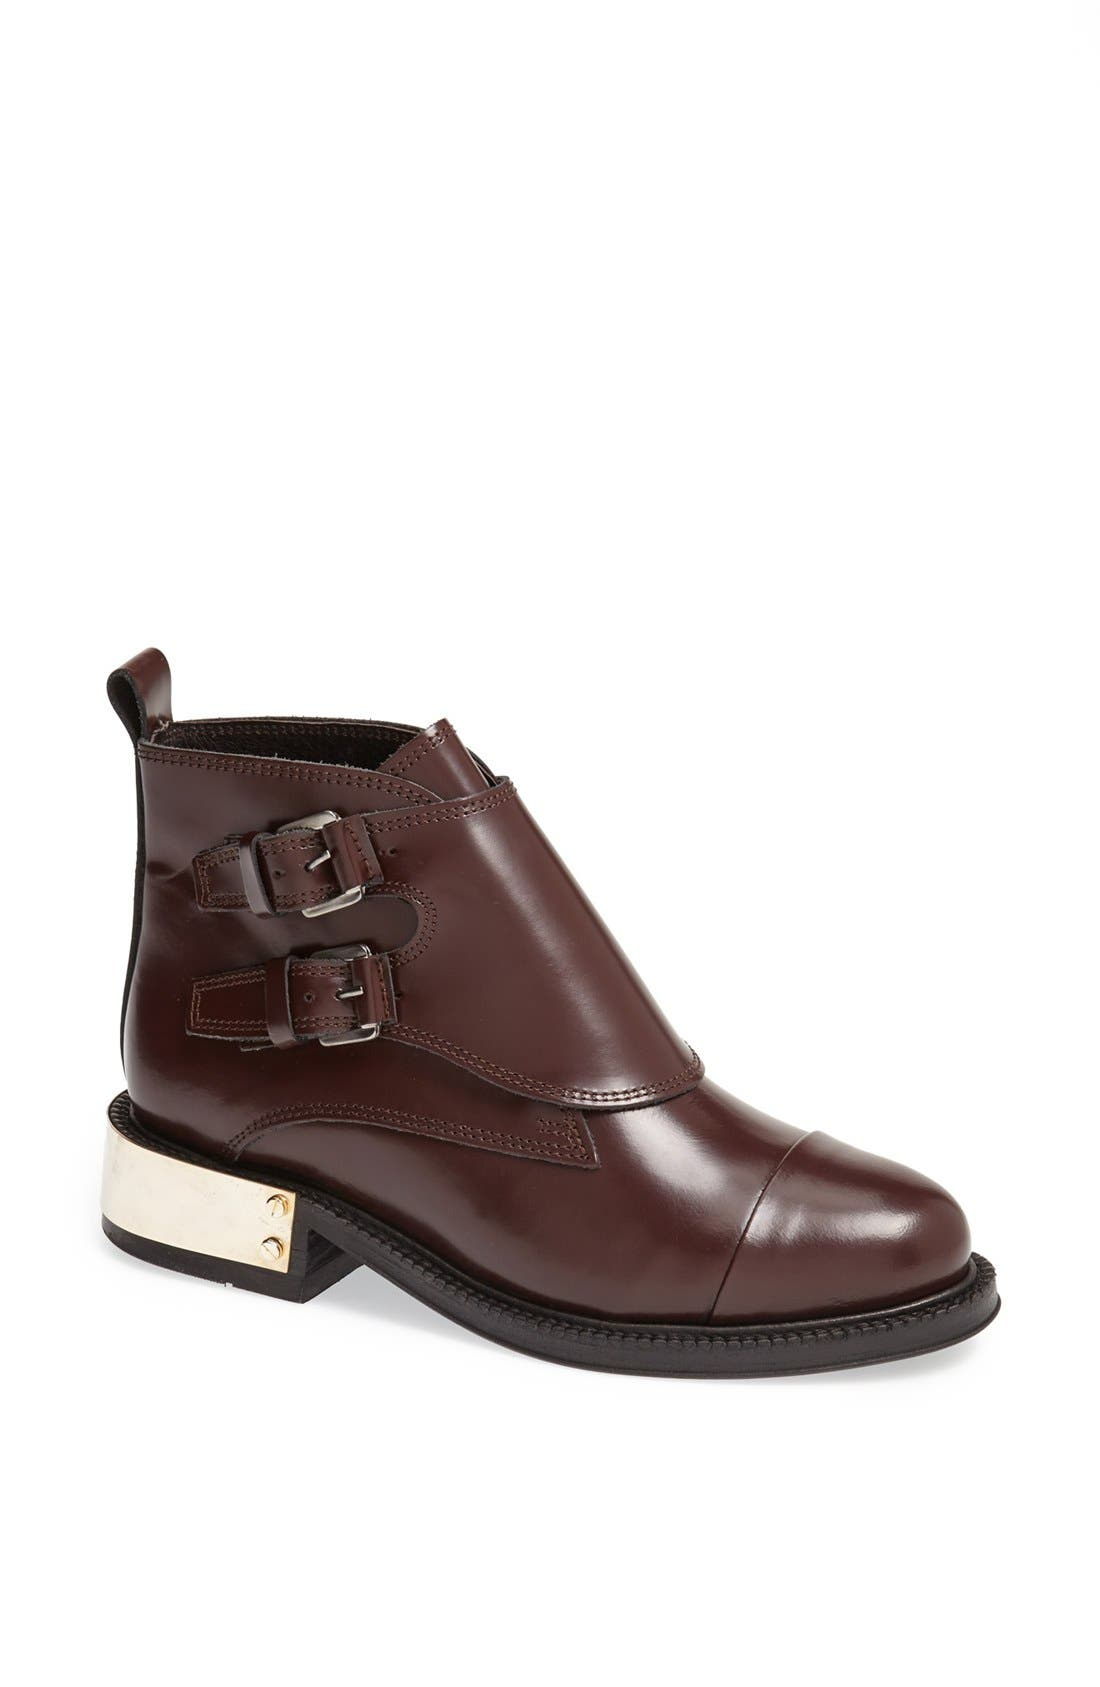 Main Image - Topshop 'Pertora' Leather Monk Strap Boot